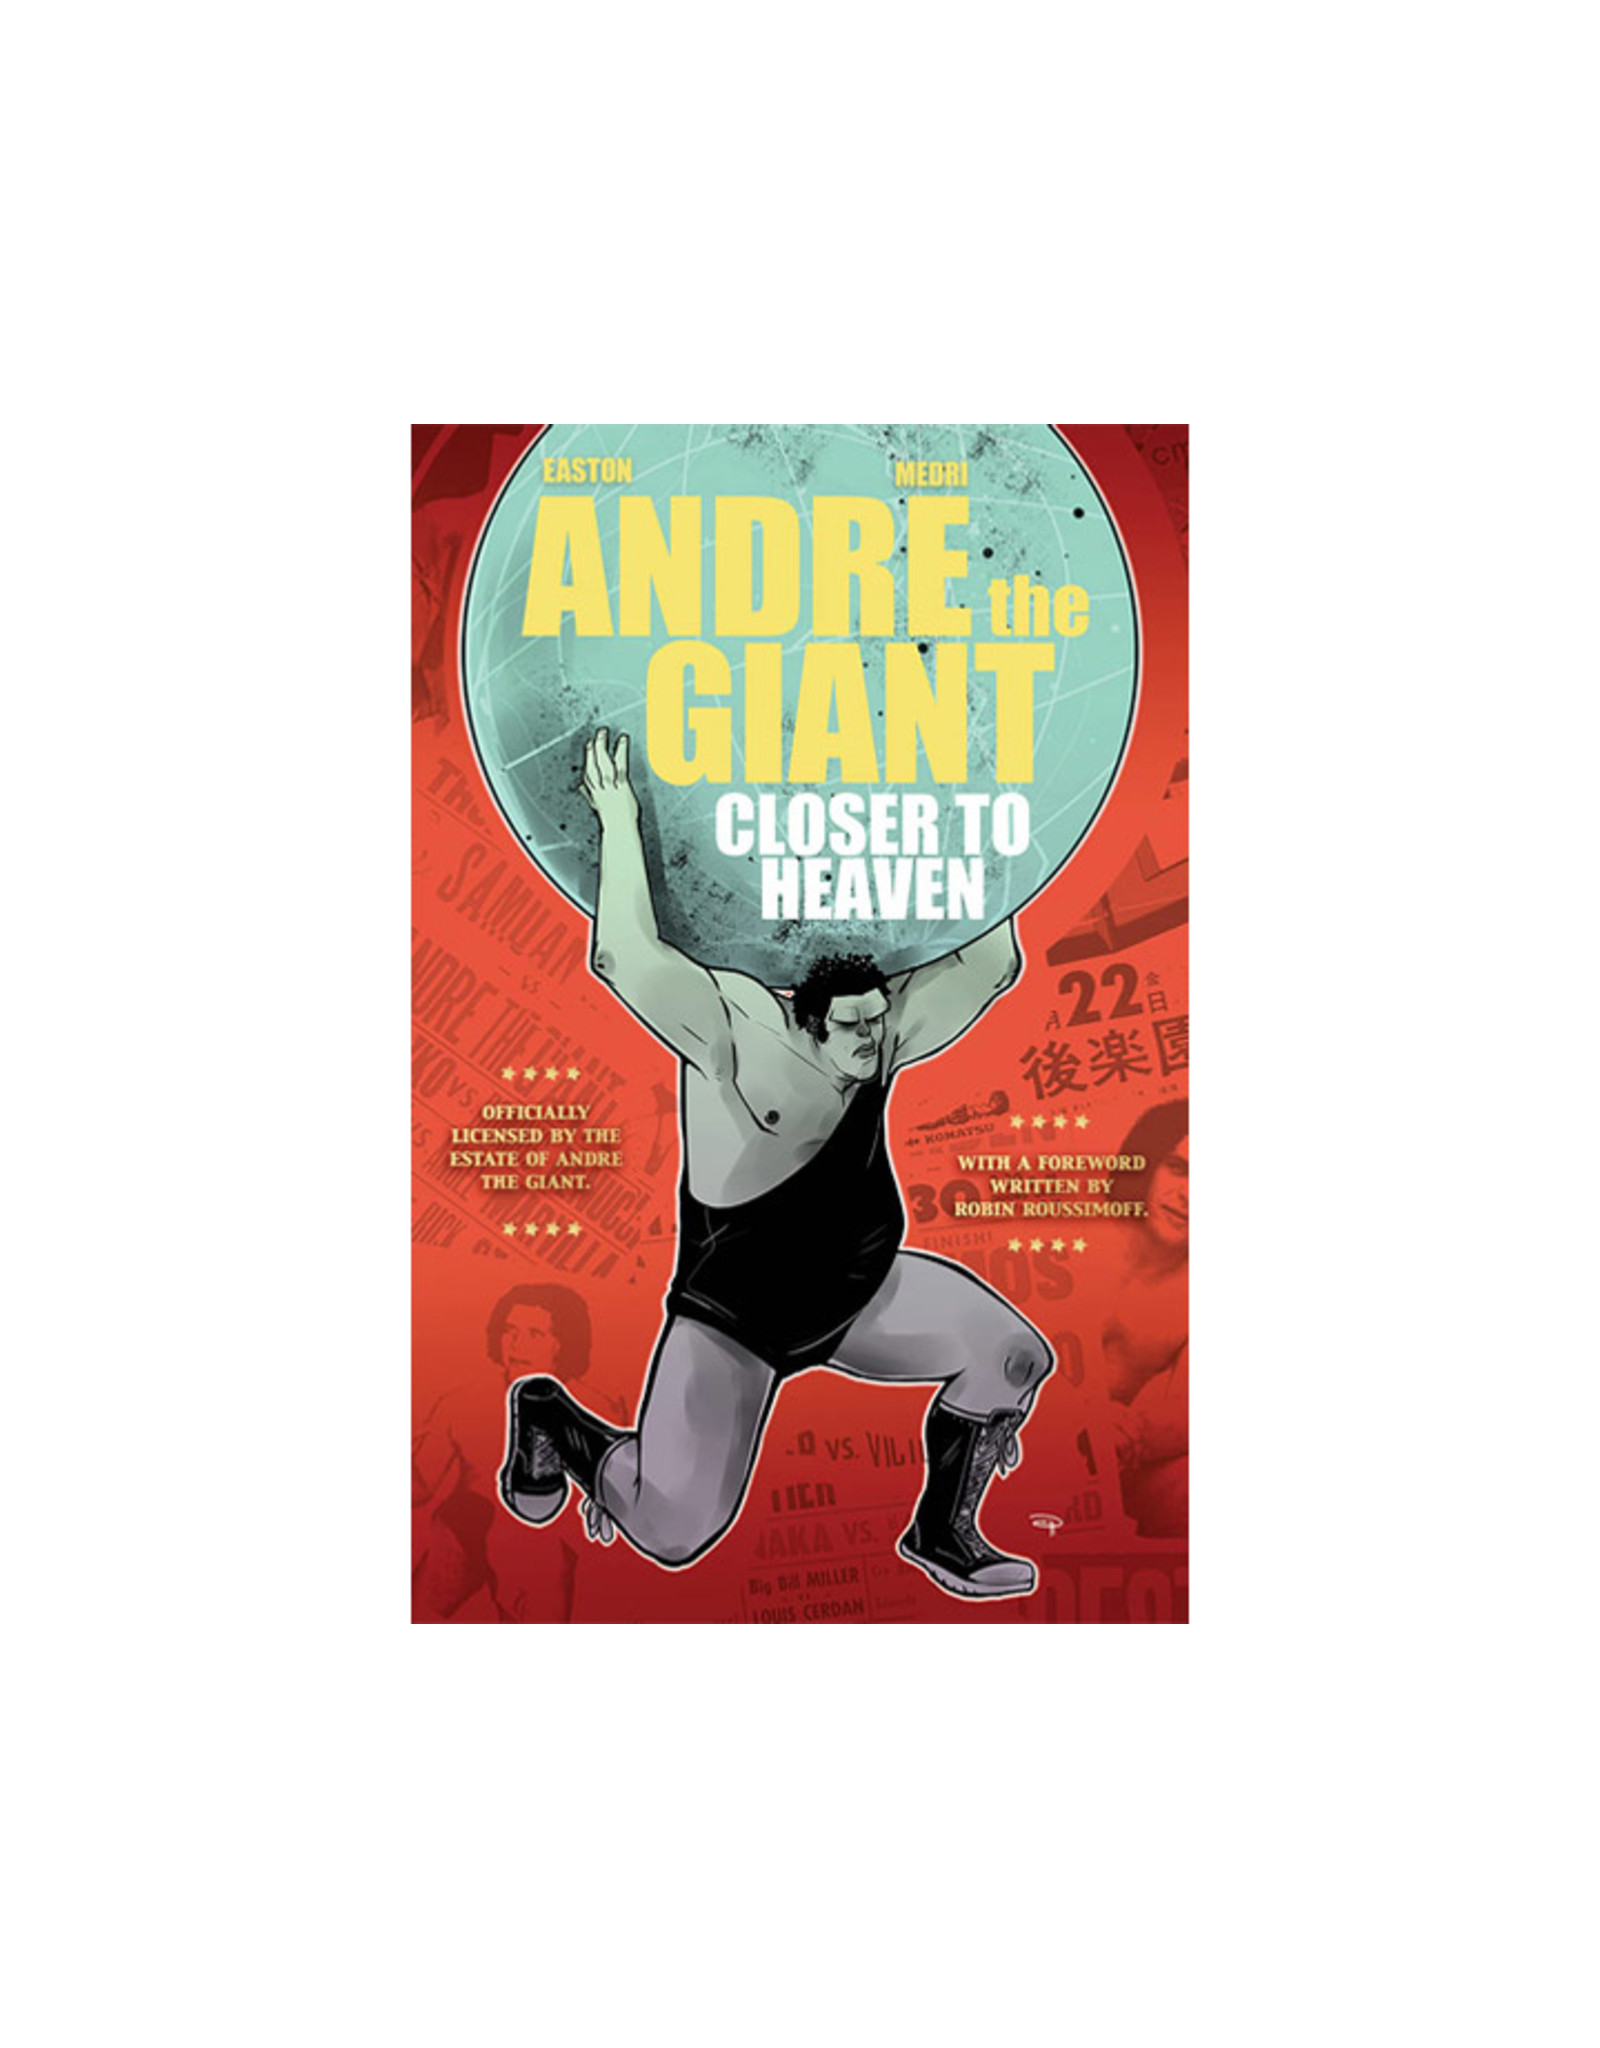 LION FORGE ANDRE THE GIANT GN CLOSER TO HEAVEN